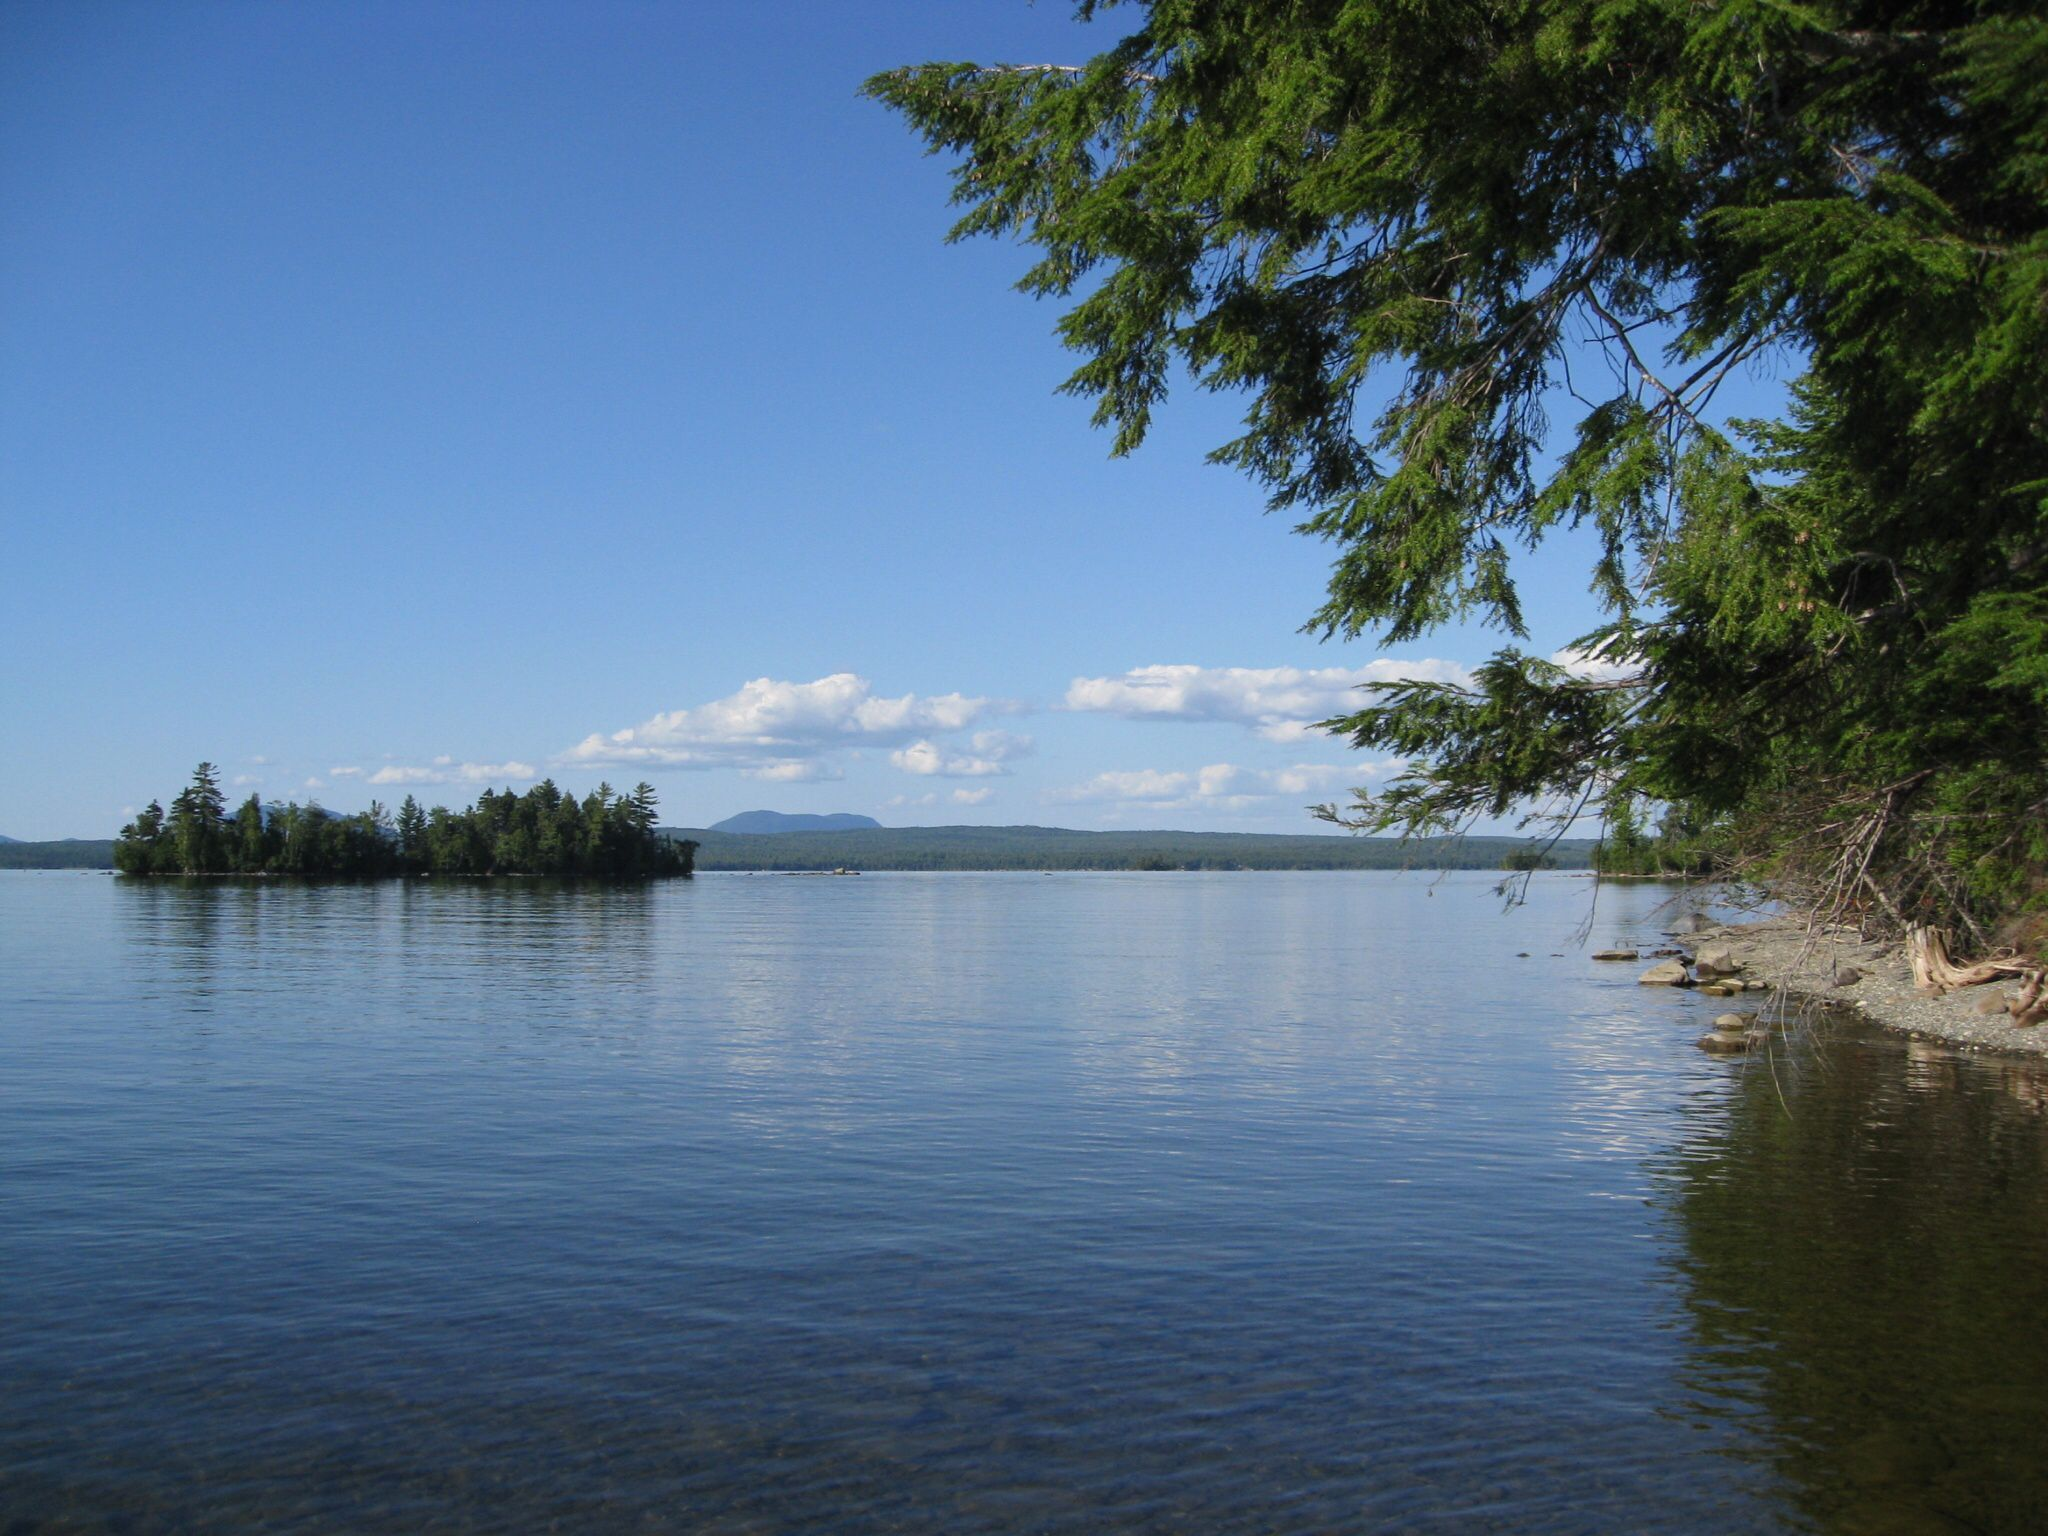 Lilly Bay State Park (Maine)   Maine   Northern maine, State parks on